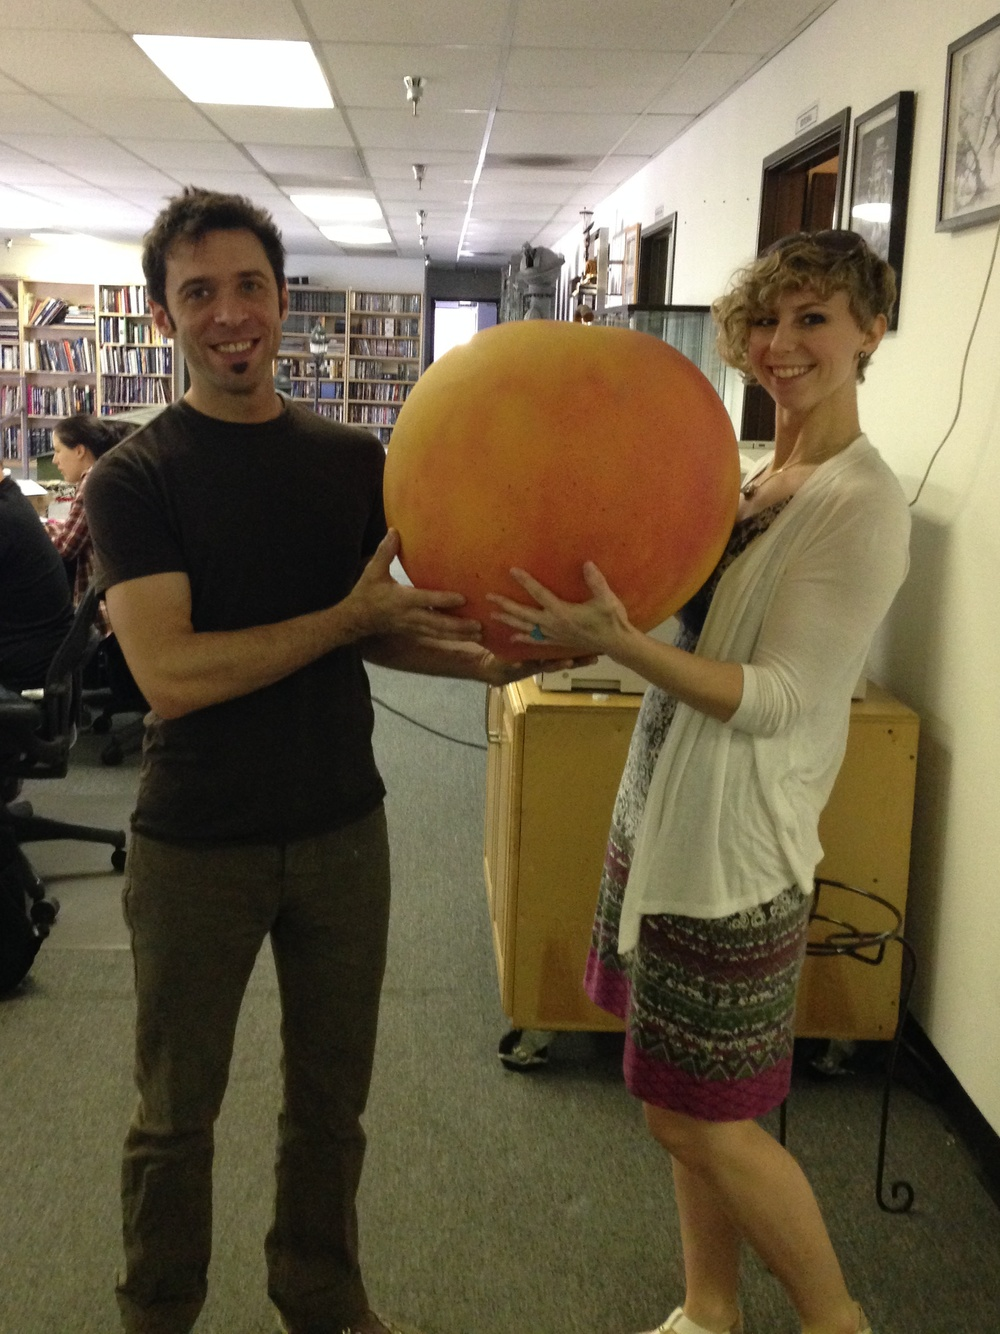 It's very convincing, even a little squishy! From James and the Giant Peach at New Deal Studios.